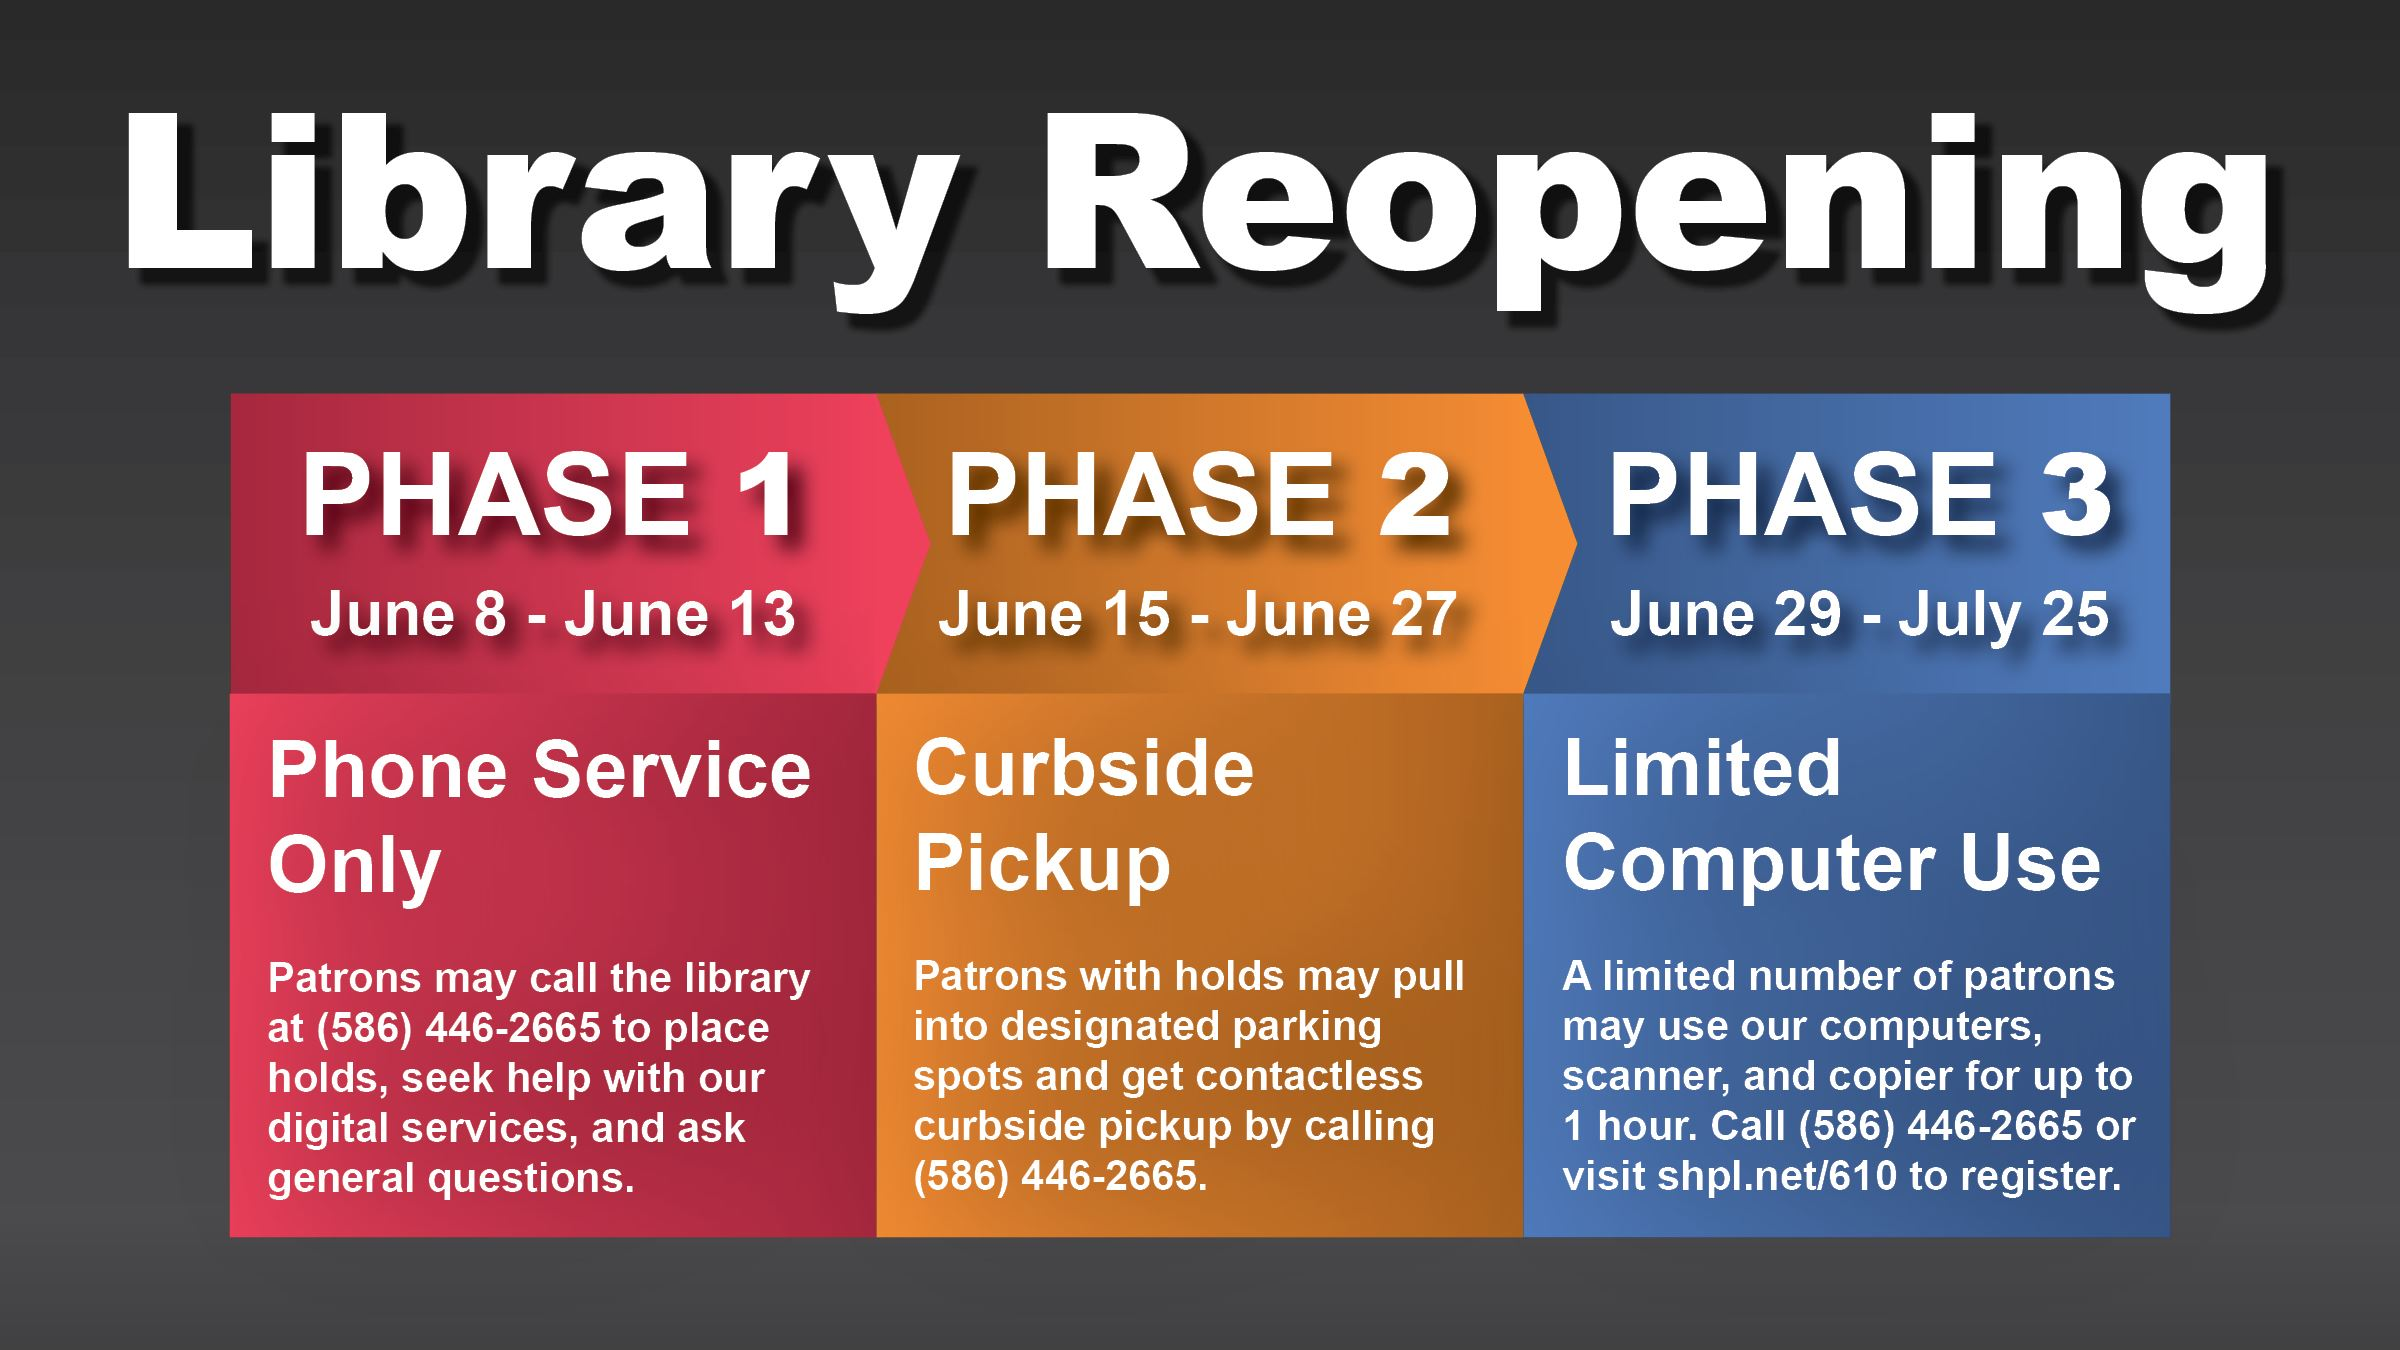 Graphic showing three phase reopening plan